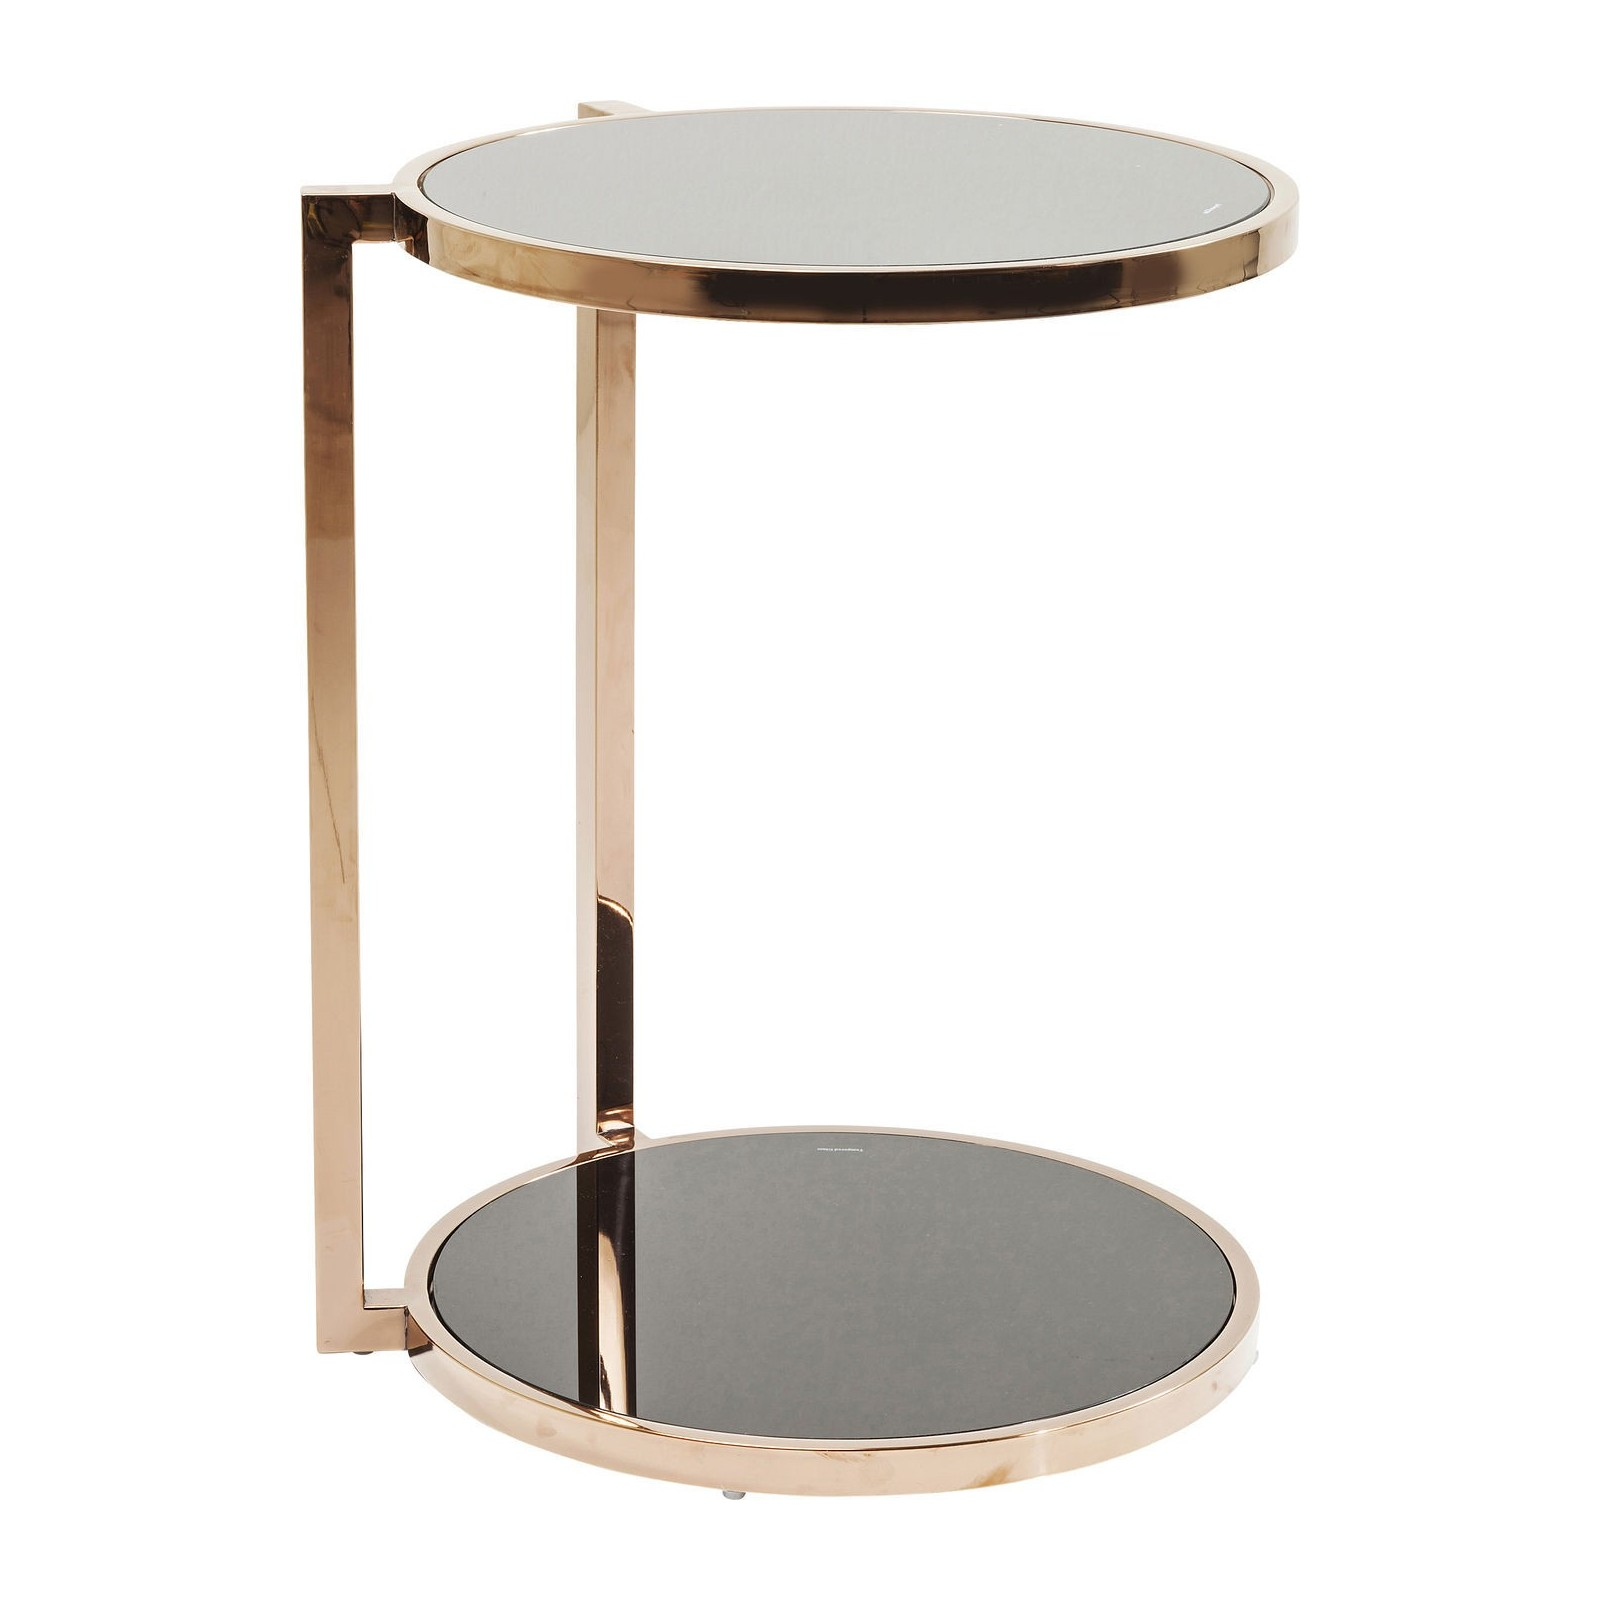 Table d 39 appoint mundo 47cm kare design - Tables d appoint design ...